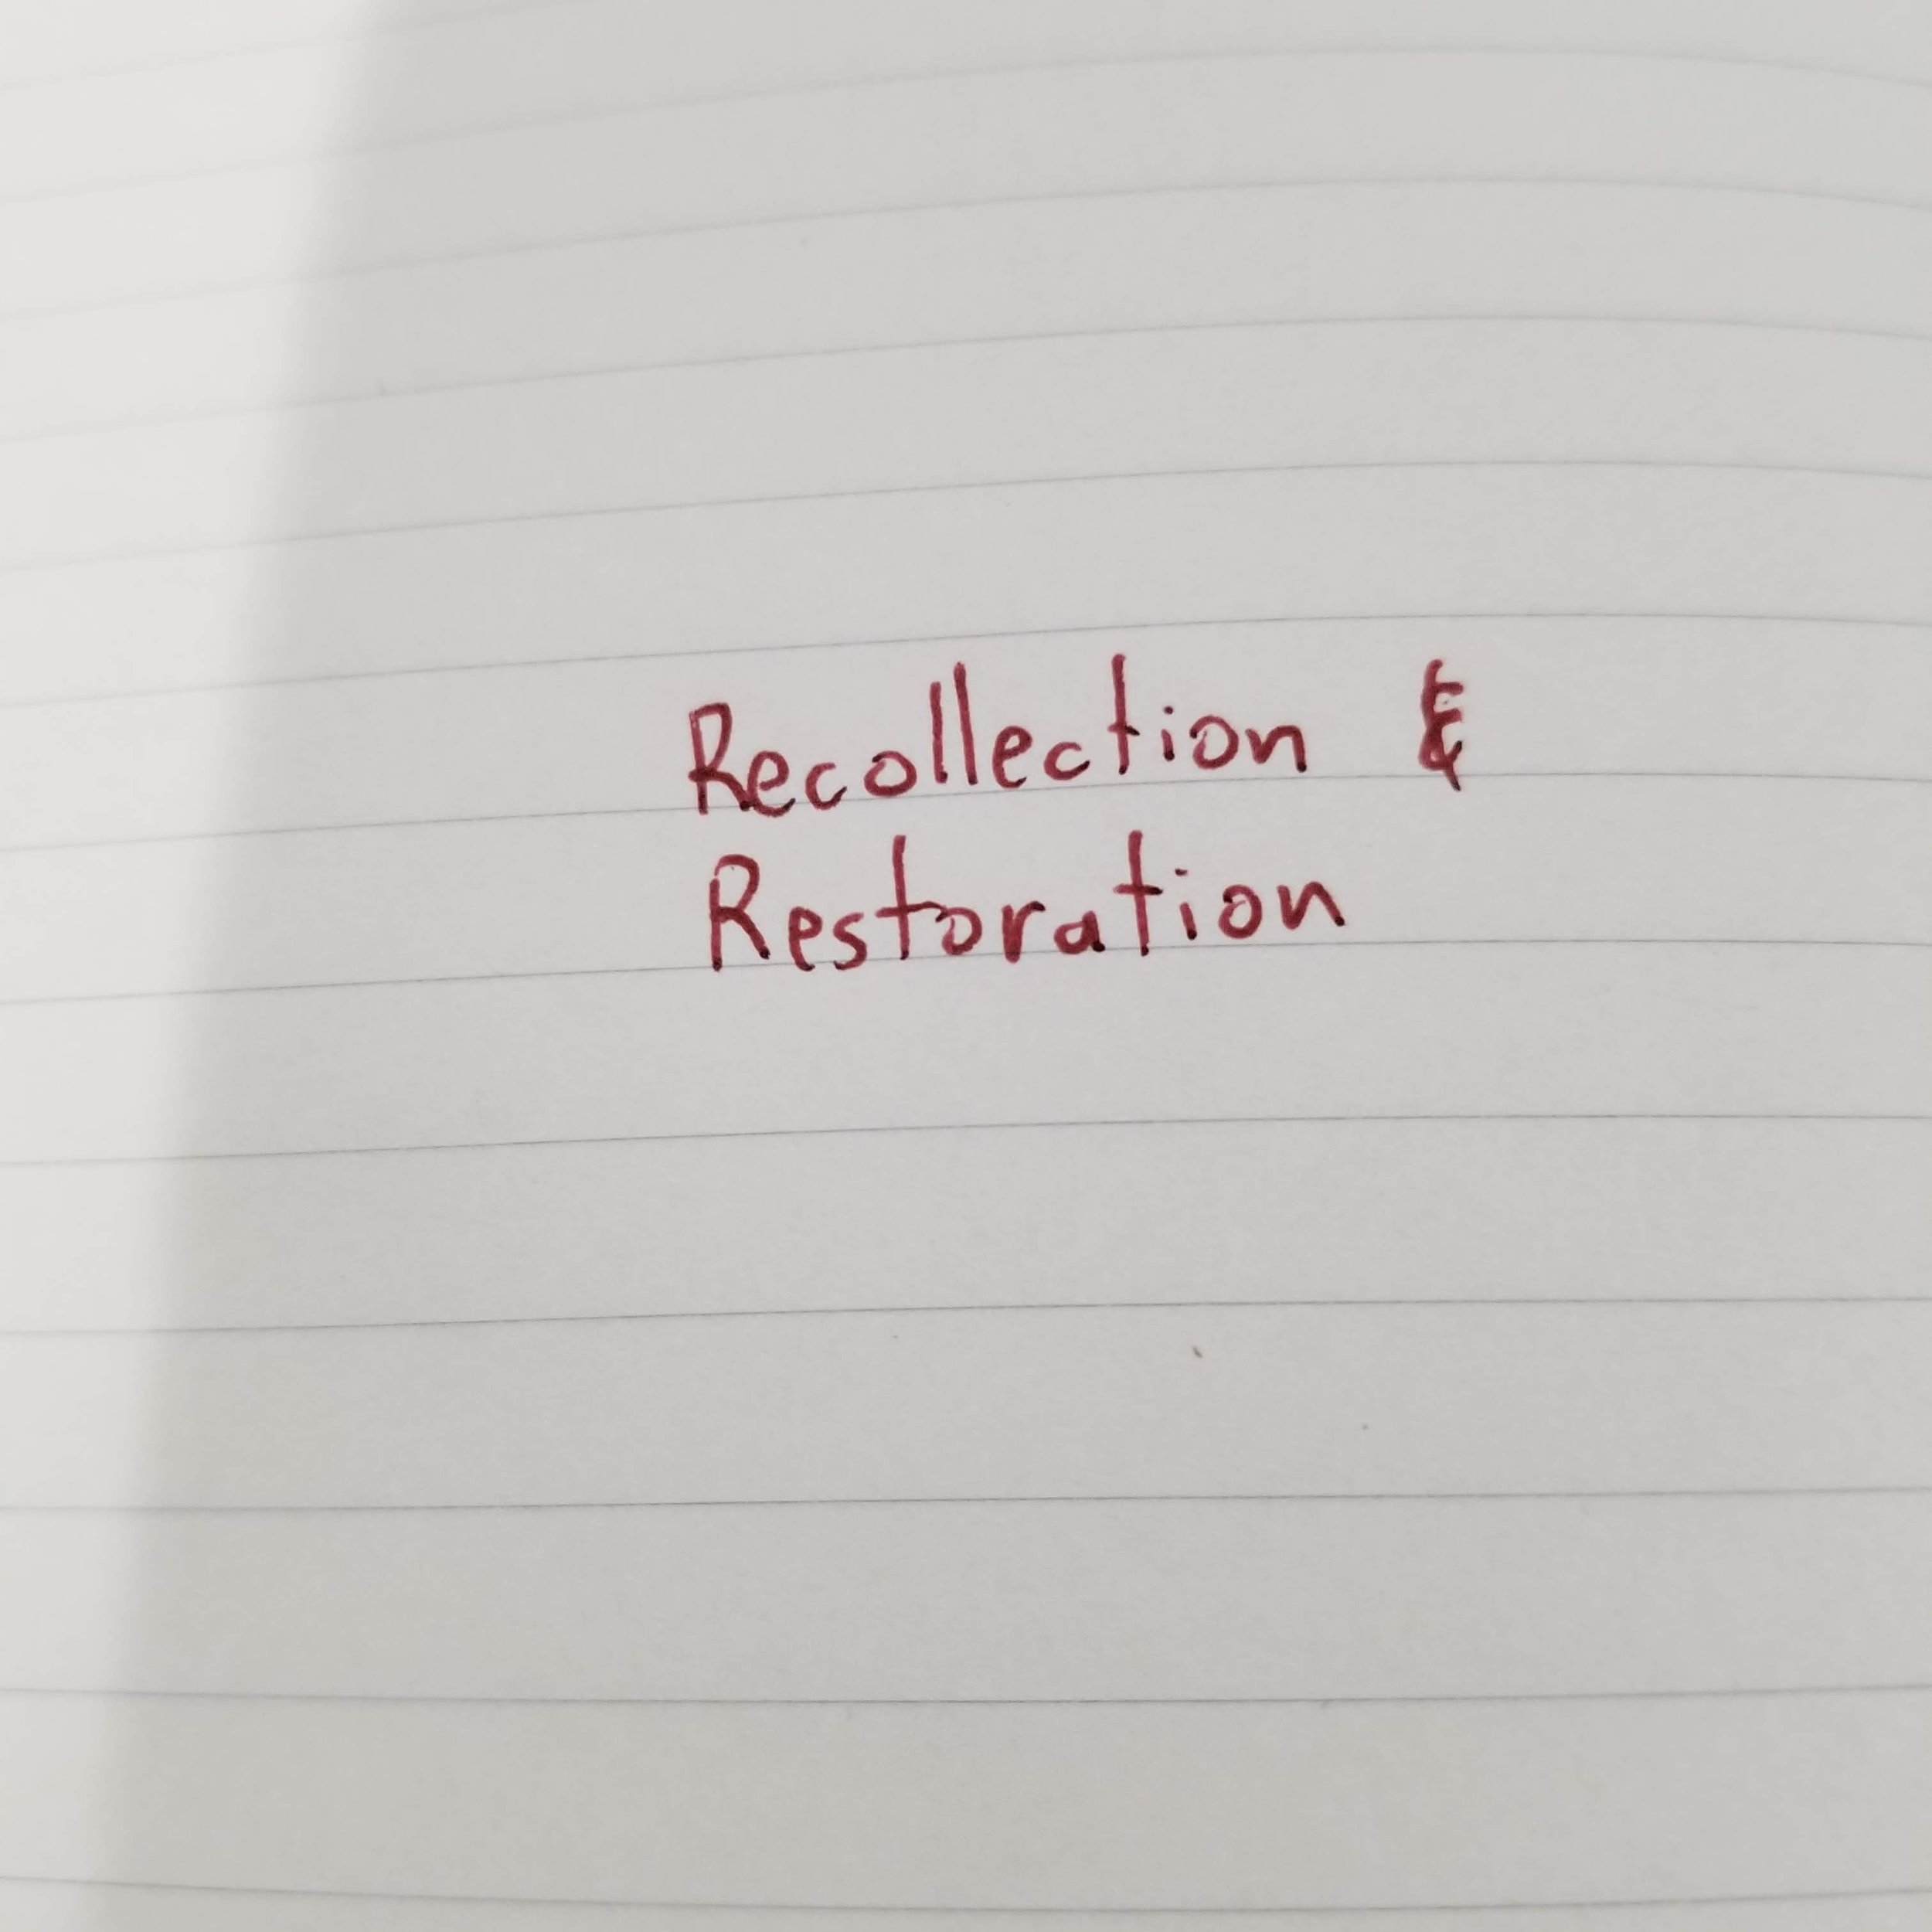 Recollection & Restoration